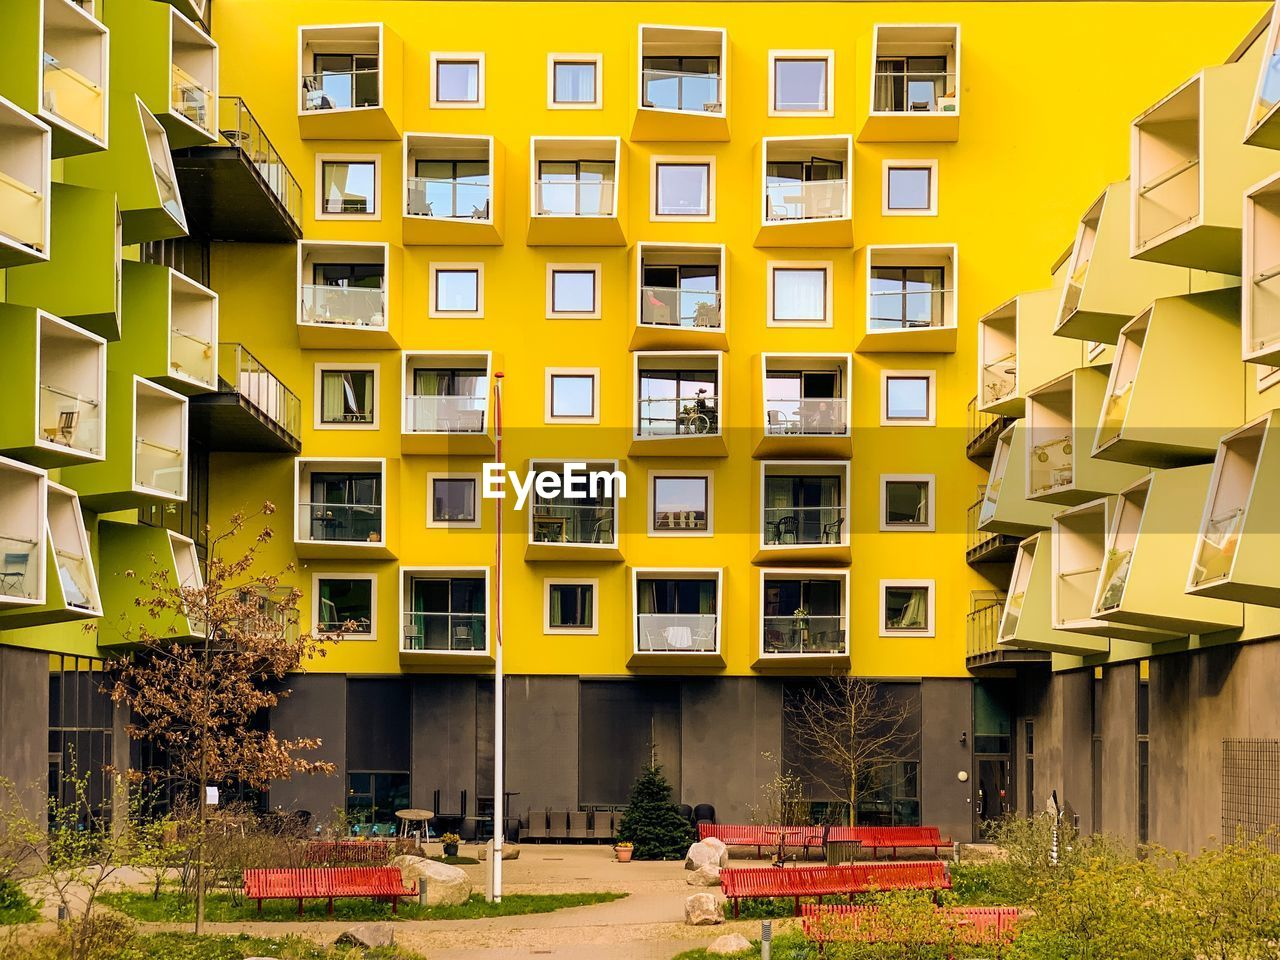 architecture, building exterior, built structure, building, residential district, yellow, city, window, no people, apartment, day, plant, outdoors, nature, house, sunlight, motor vehicle, grass, mode of transportation, footpath, housing development